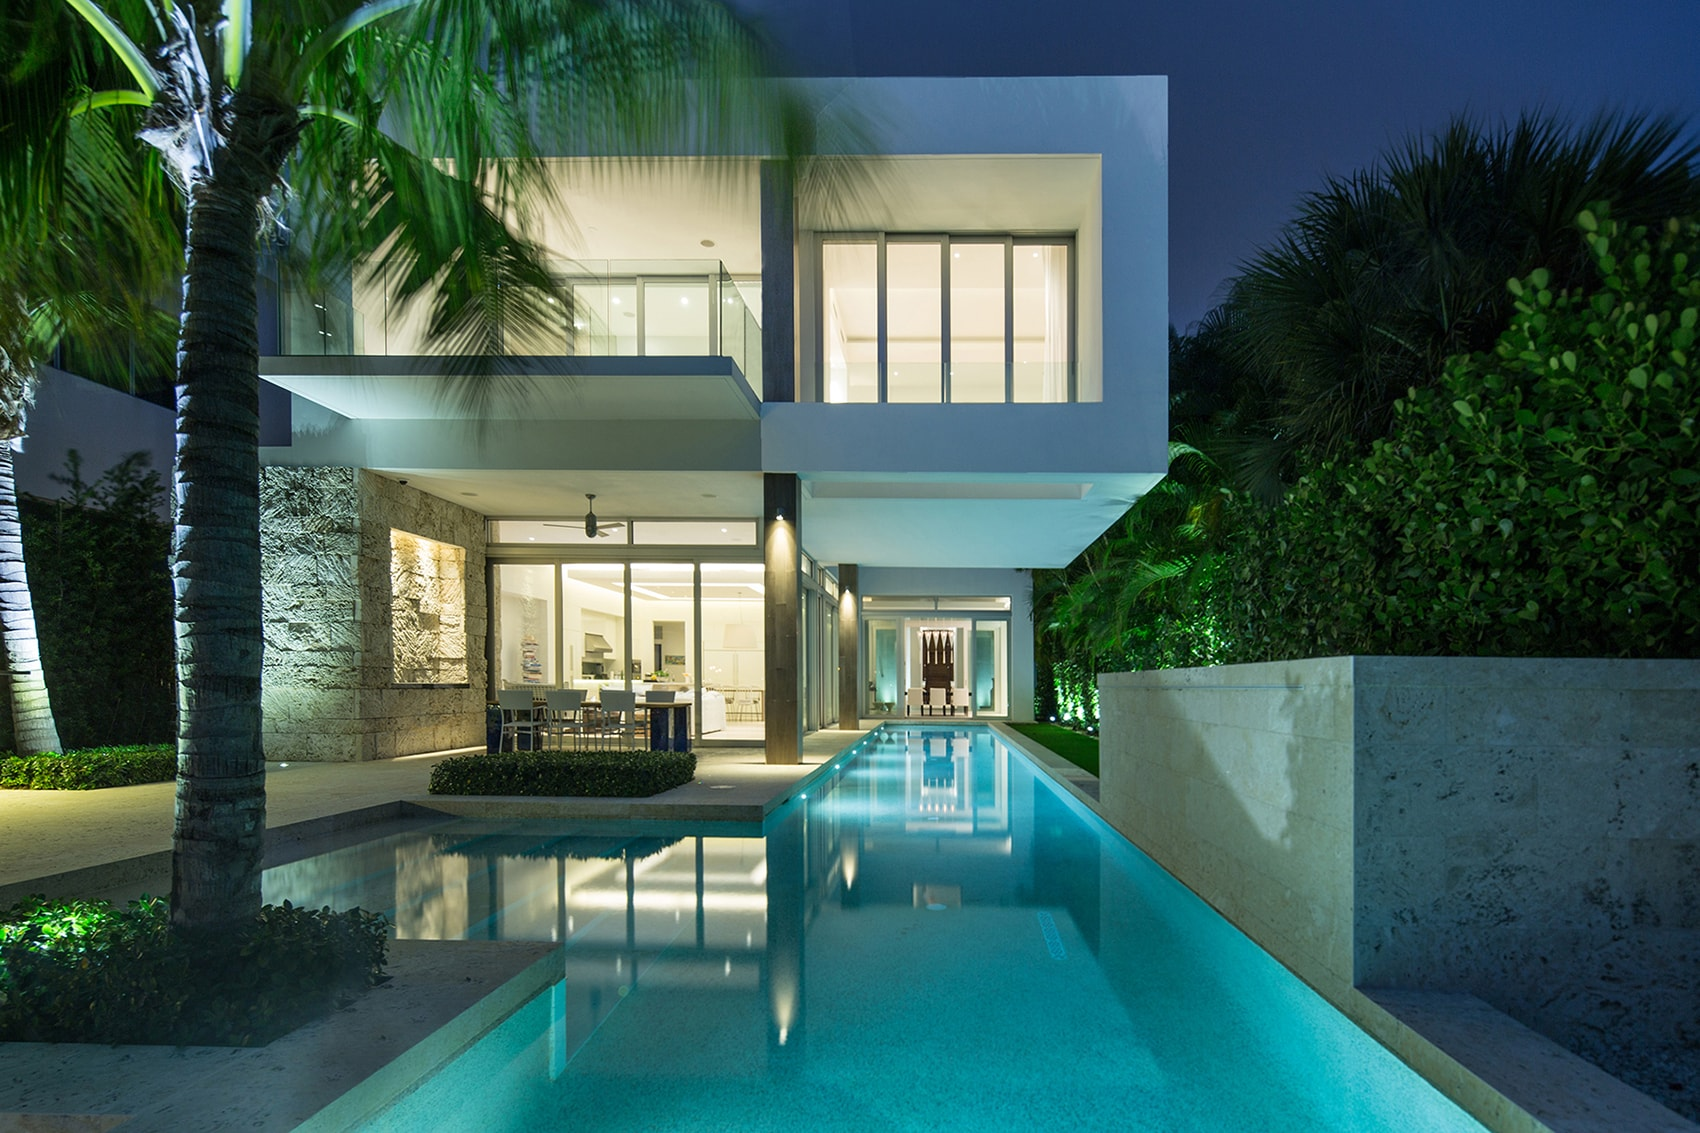 Amazing Houses: Living Modern With Style - Architecture Beast